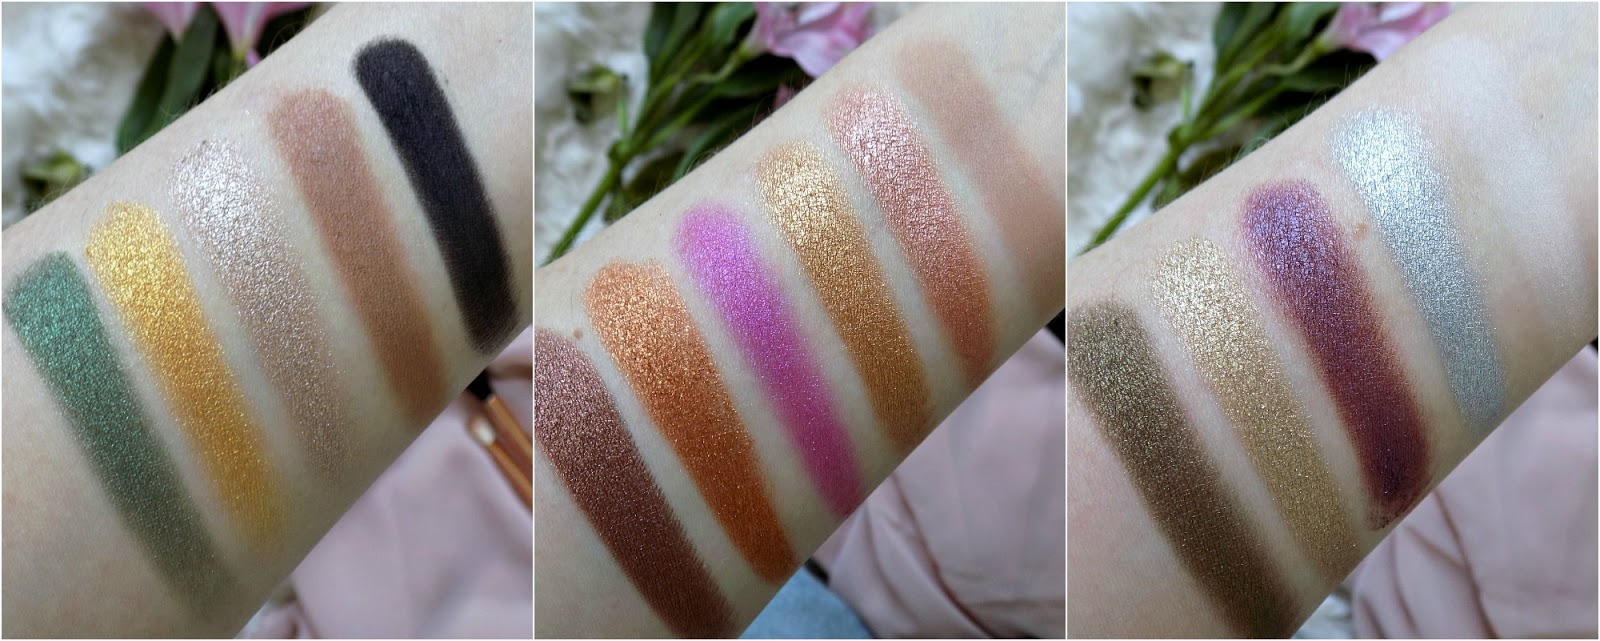 Too Faced Chocolate Gold palette swatches